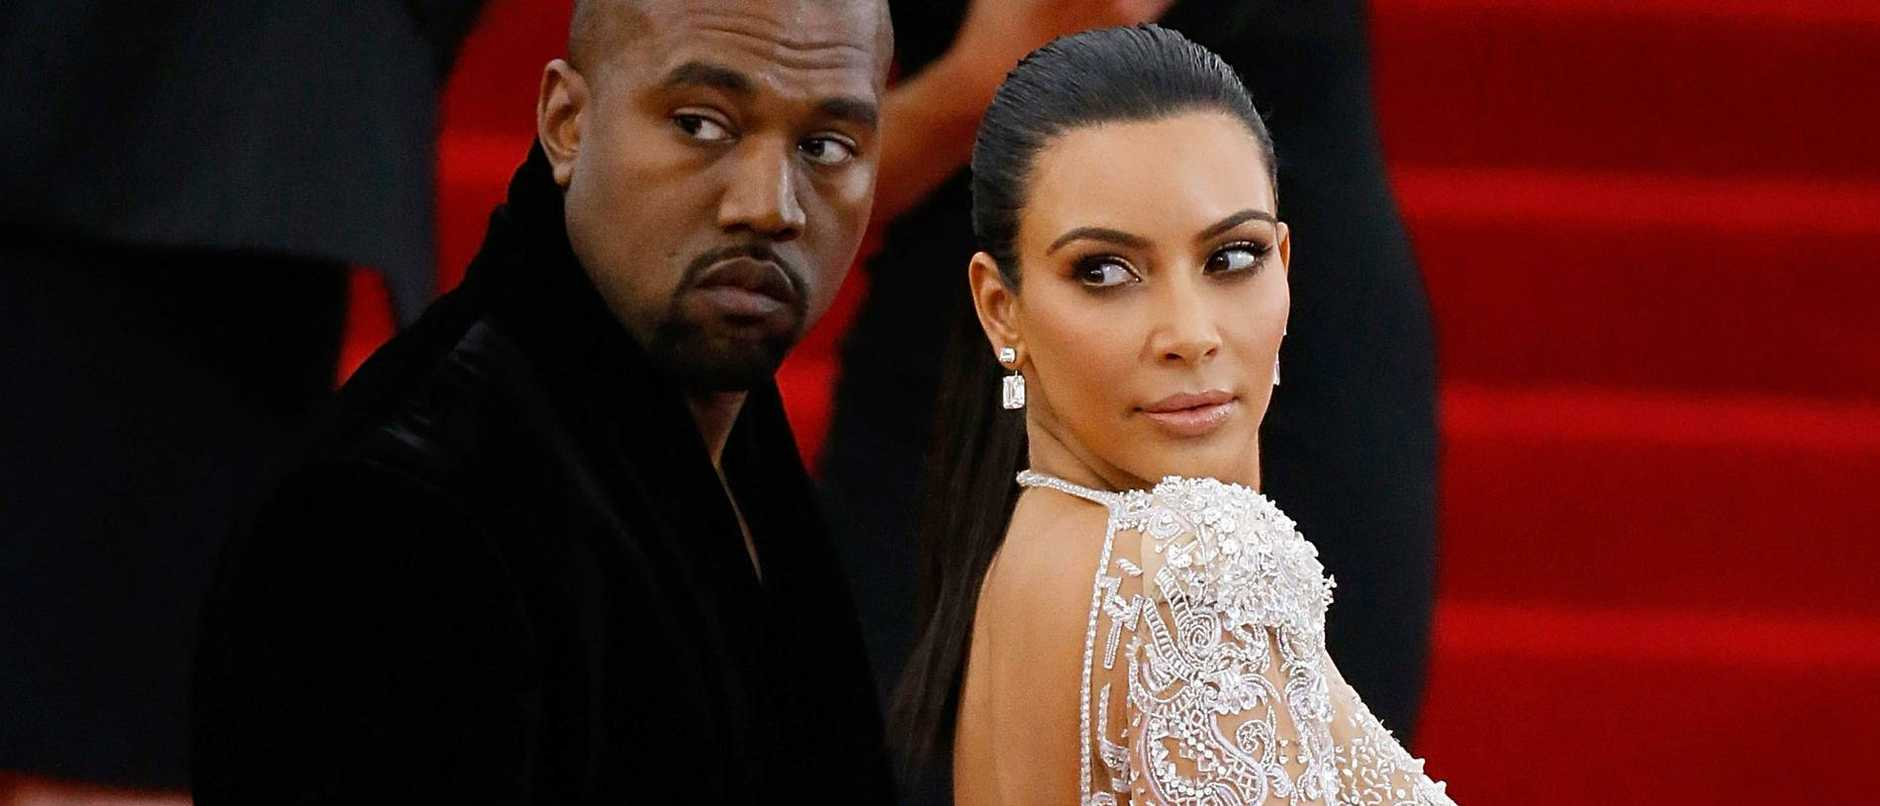 Hollywood's most famous couple are reportedly headed for splitsville – and both Kim Kardashian and Kanye West have a lot to lose.